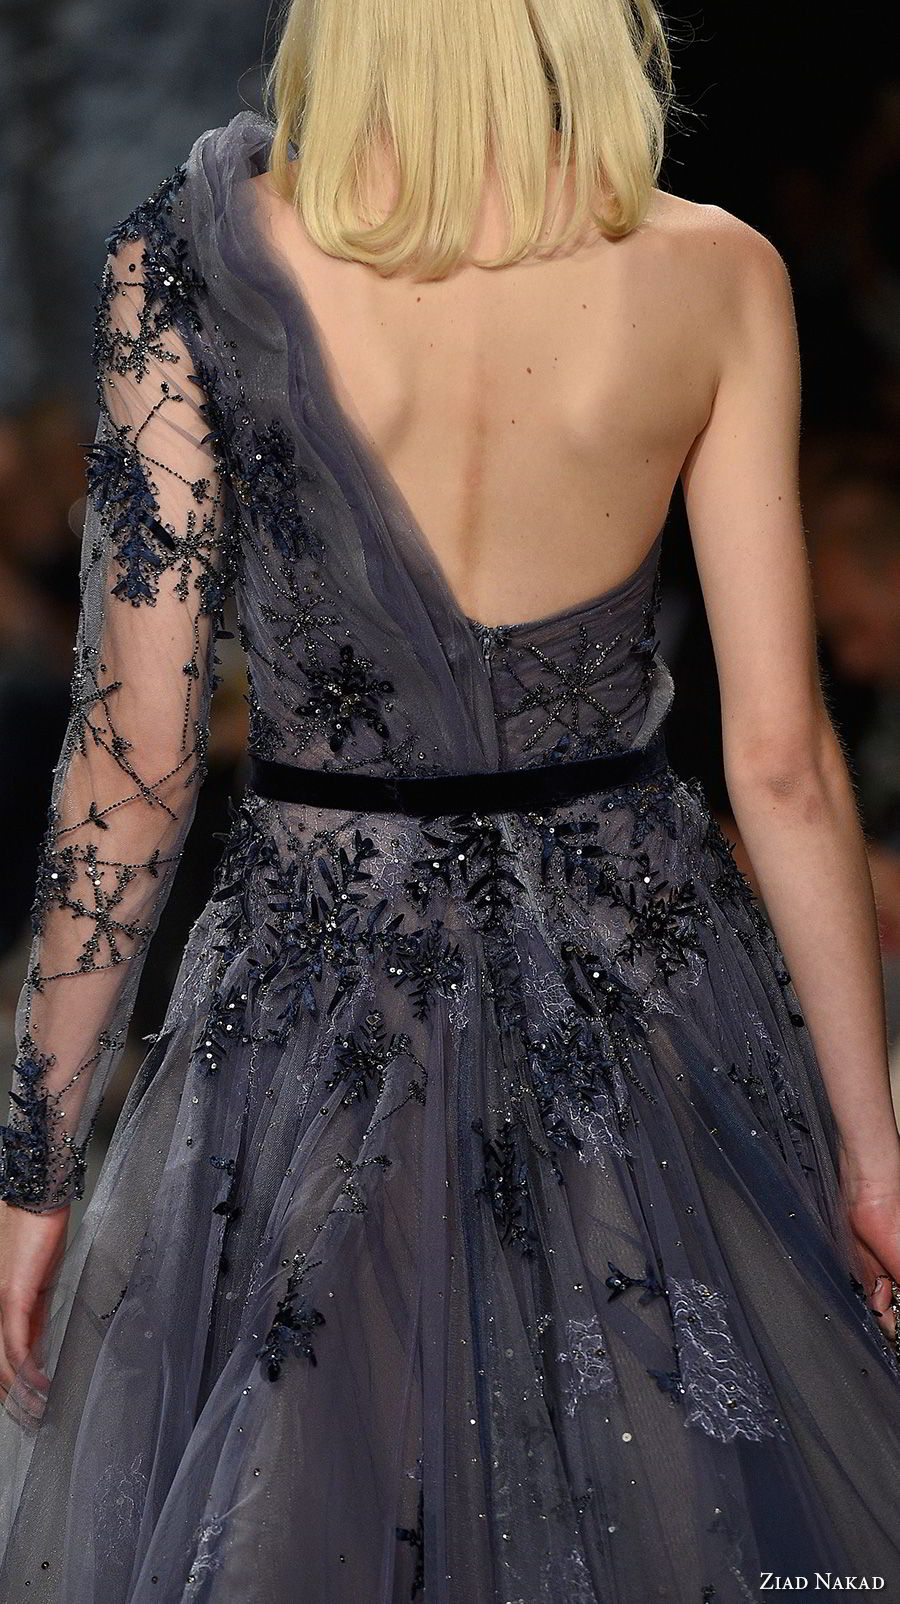 ziad nakad couture fall 2017 one shoulder heavily embellished bodice glamorous romantic purple gray a  line wedding dress open back medium train (19) zbv